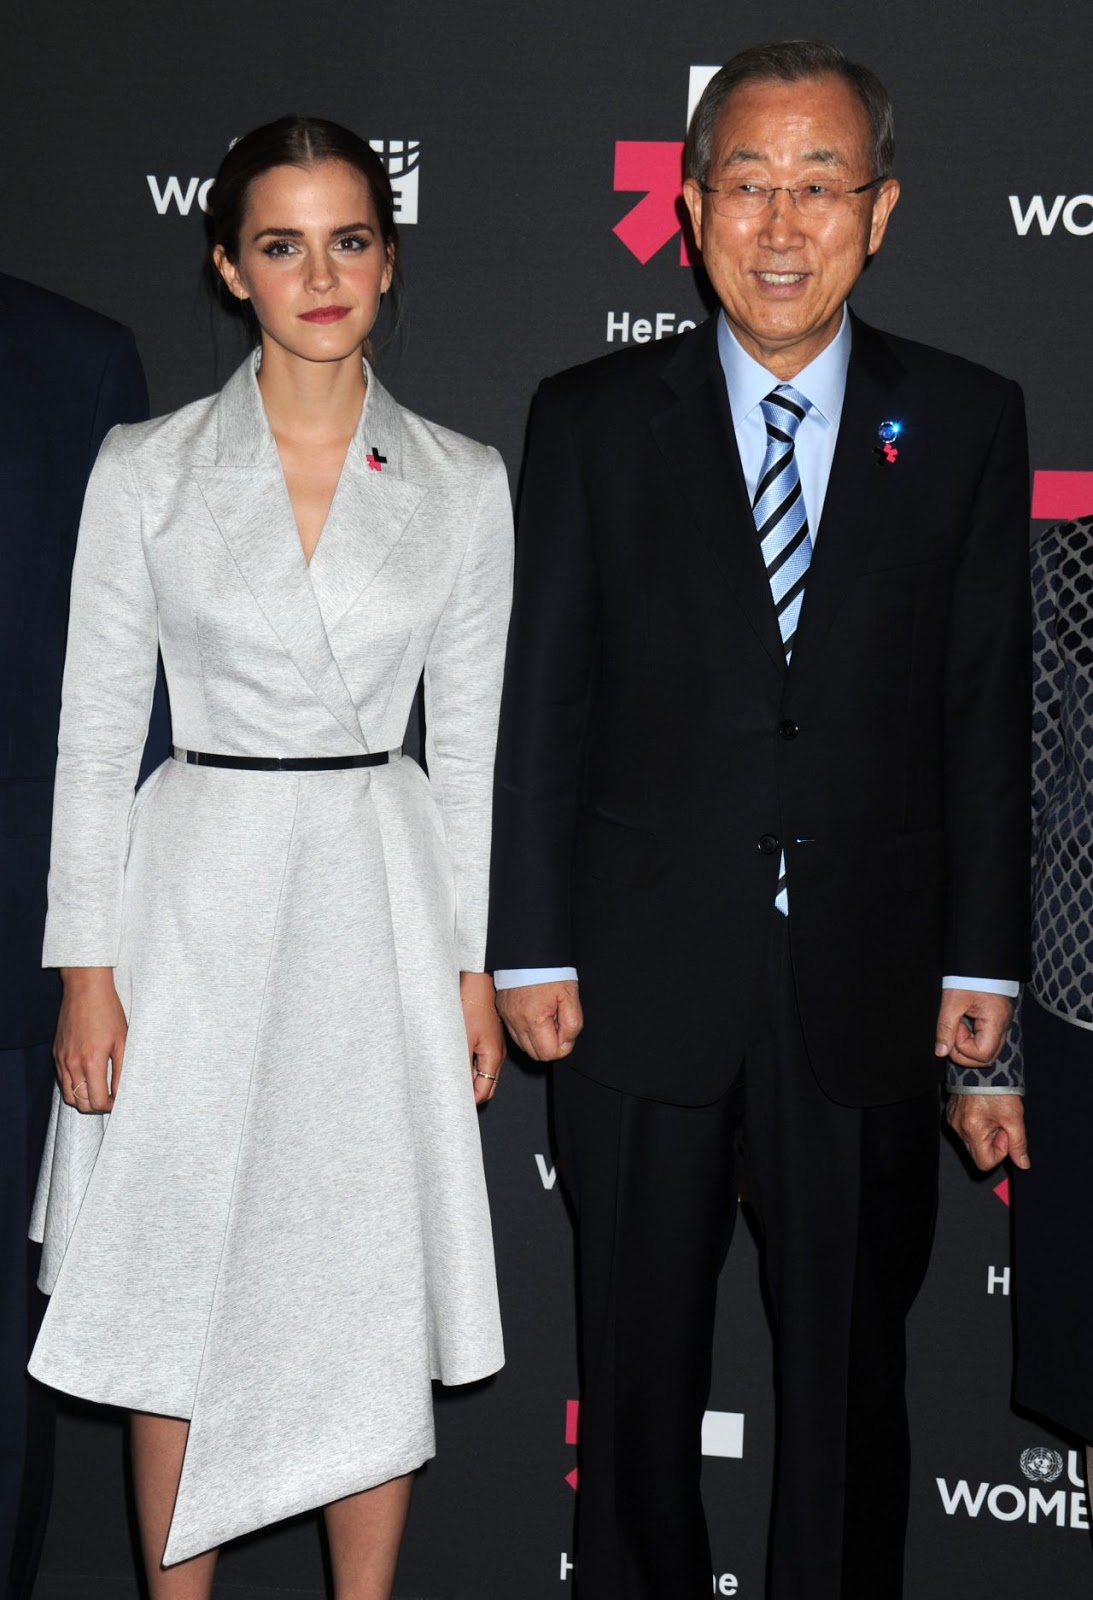 Emma Watson in a belted coat dress at the UN Women's HeForShe Campaign Launch Event in NY